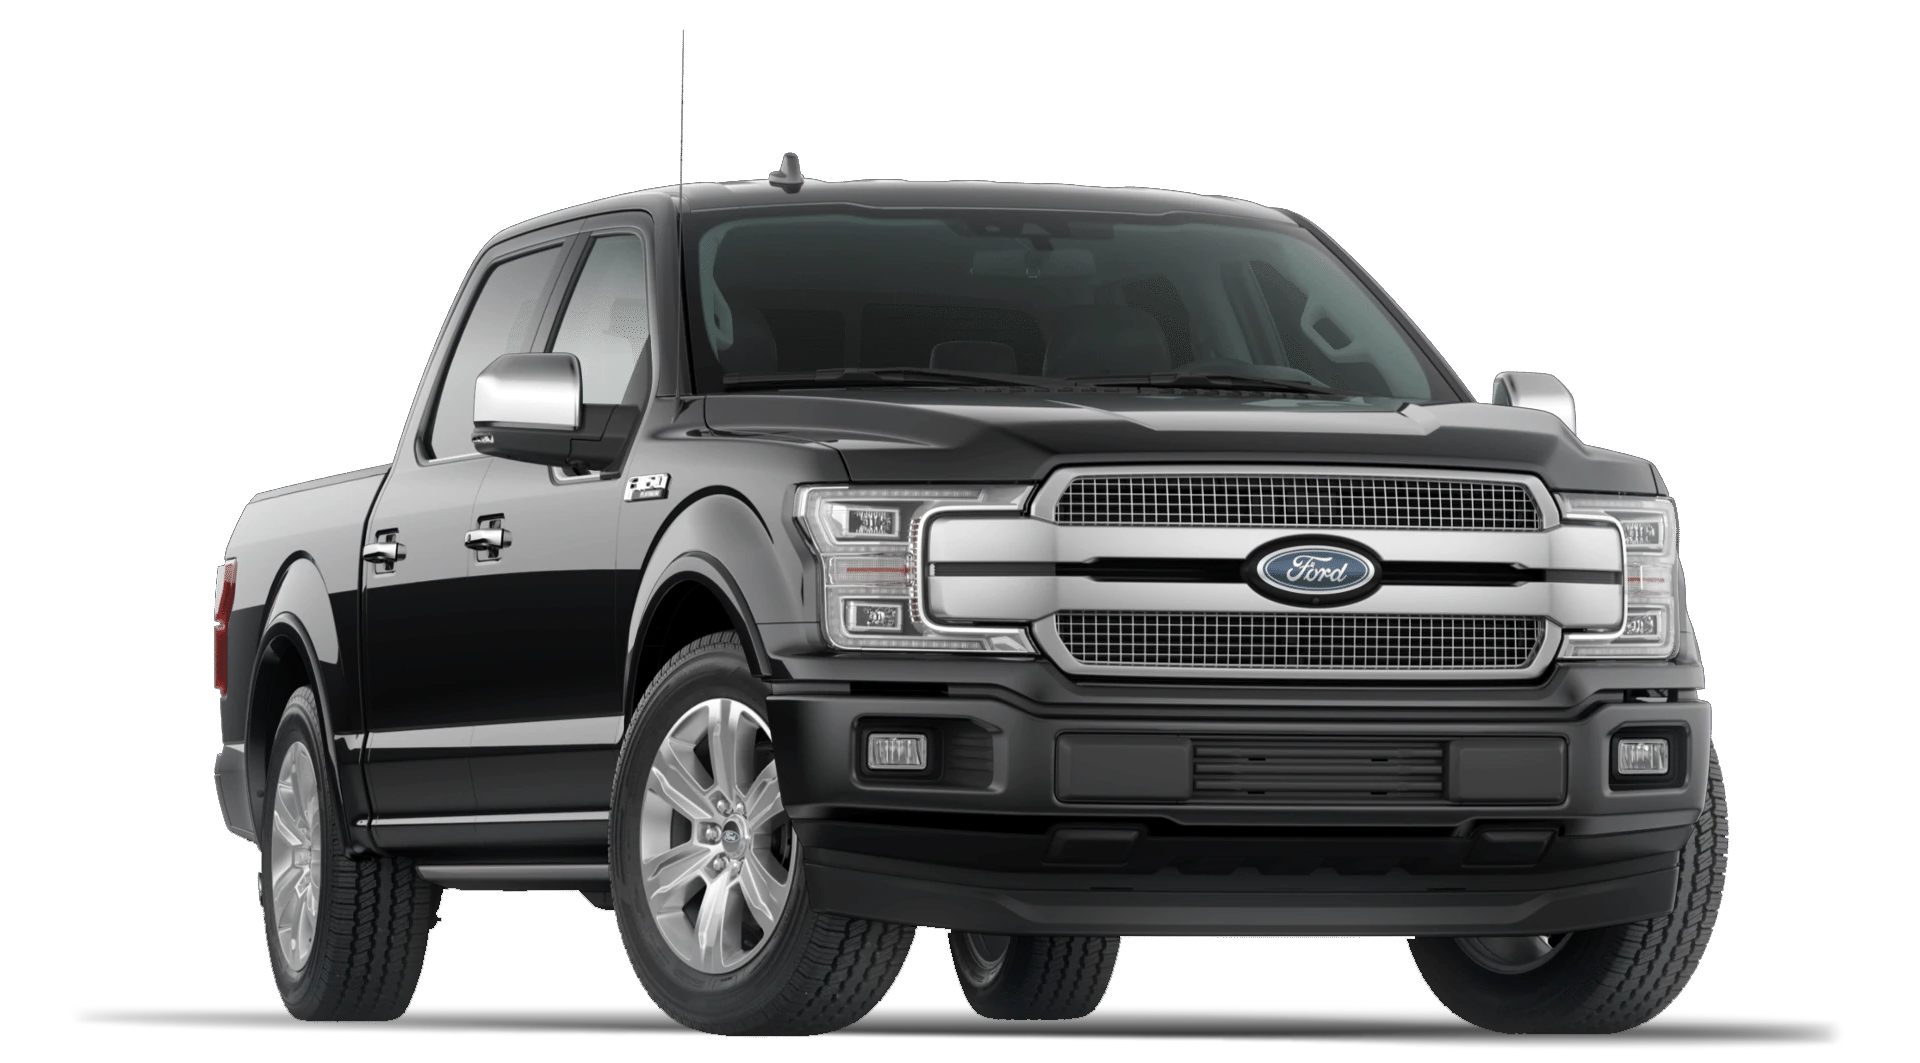 2020 Ford F150 Platinum Super Crew Cab in Agate Black Exterior with Technology Package